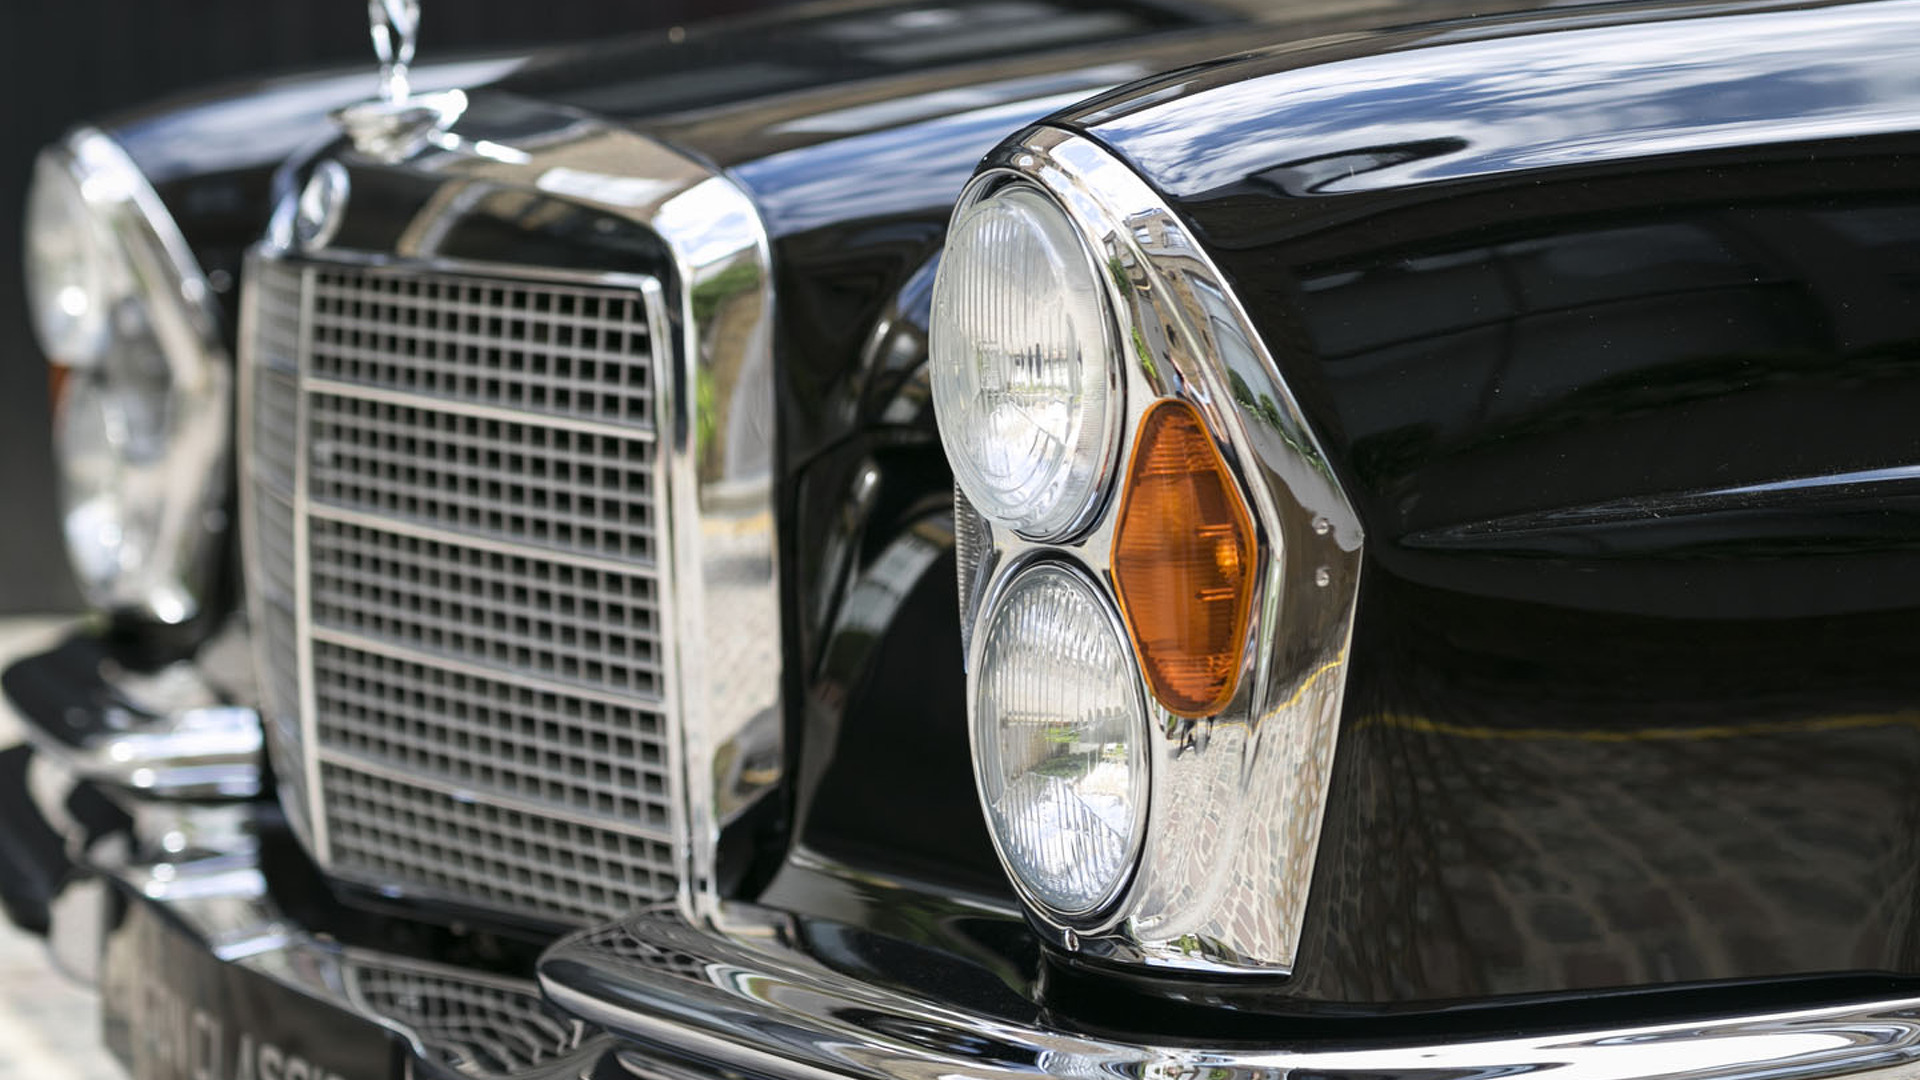 Rare and lovely RHD 1970 Mercedes 280 SE 3 5 Cabriolet for sale